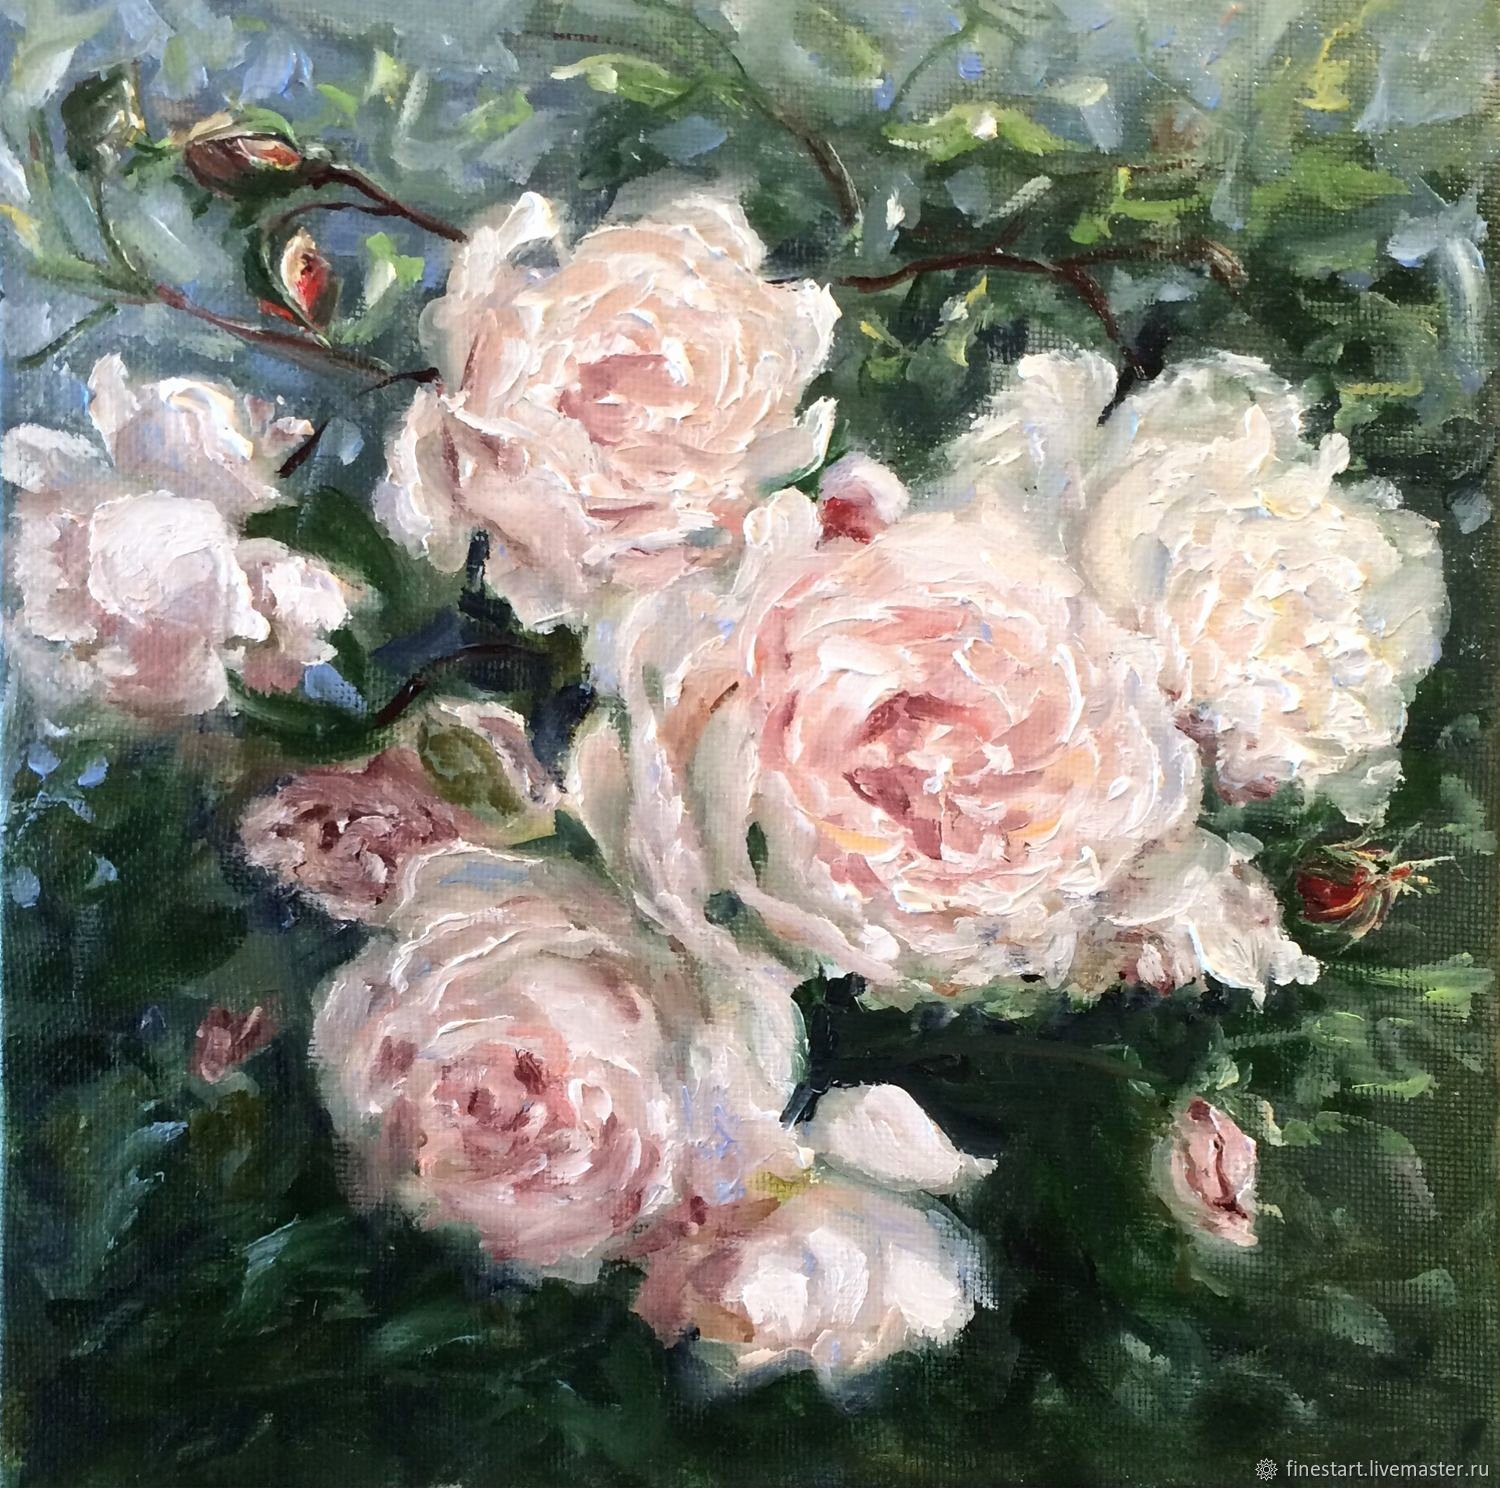 Picture Of Flowers to Paint Elegant Oil Painting White Rose Painting – заказать на Ярмарке